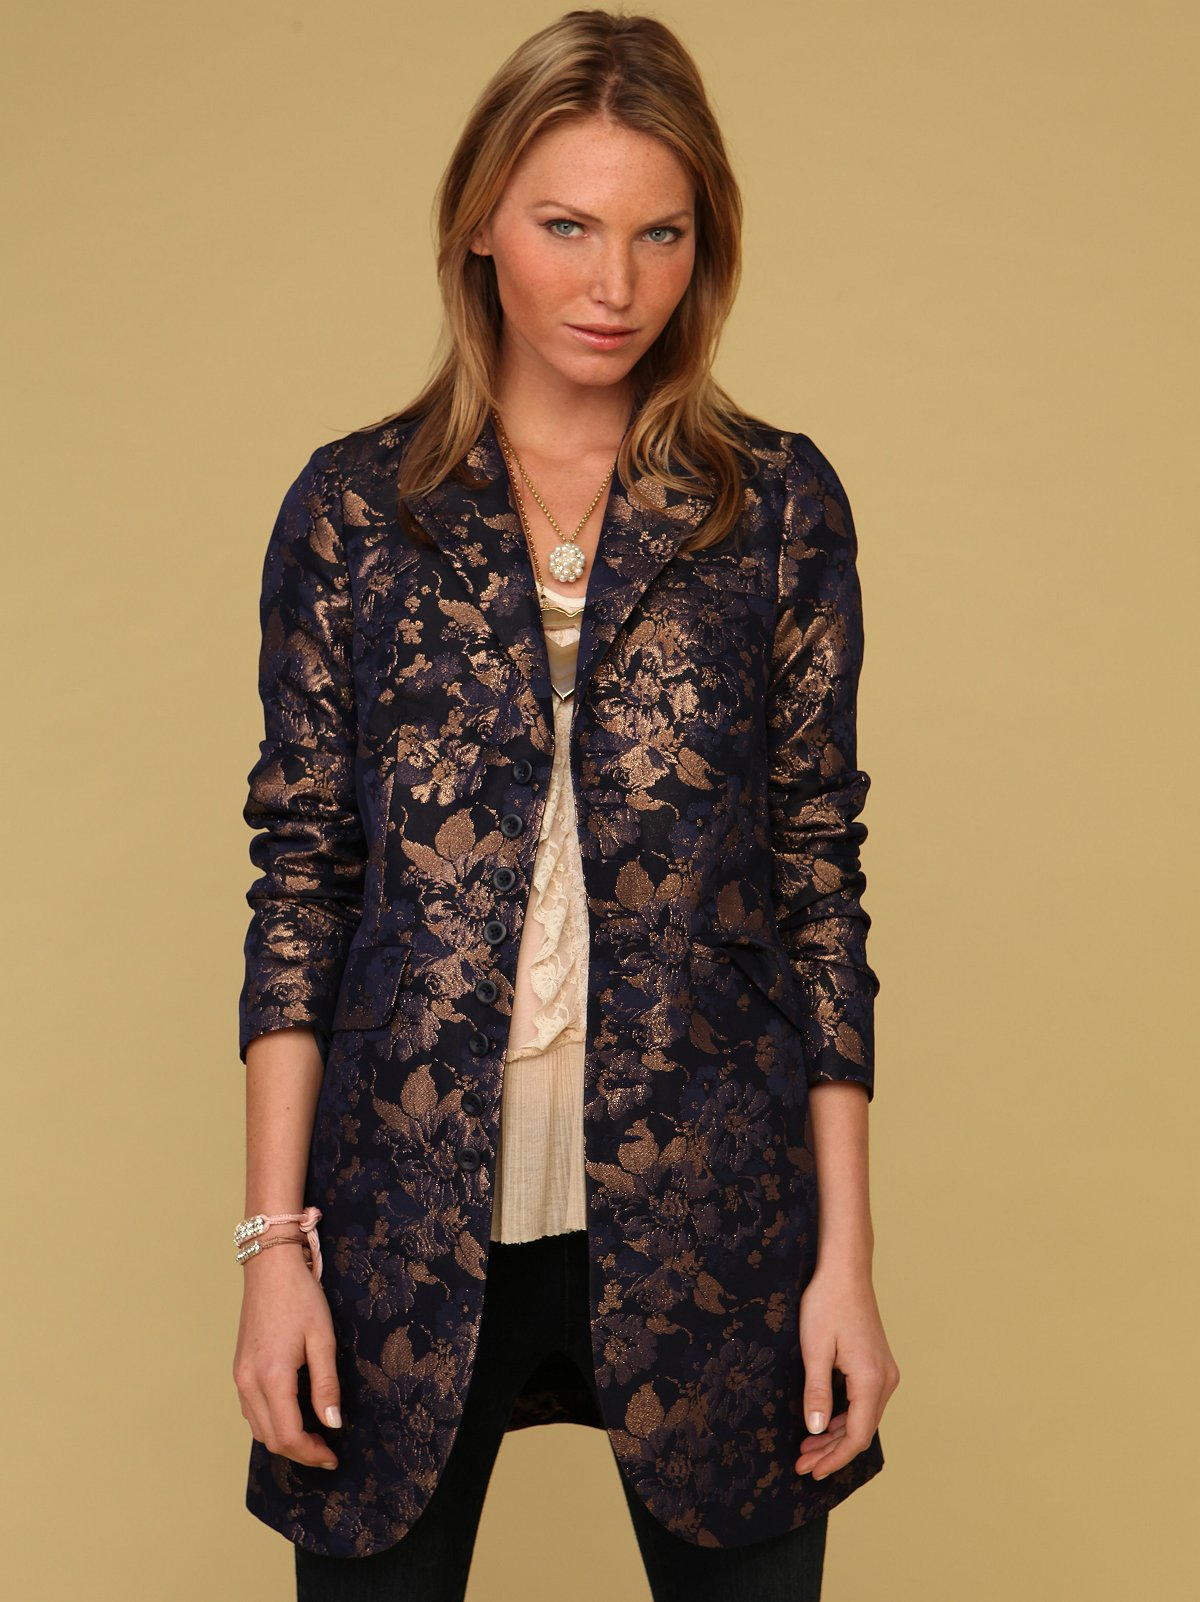 Brocade Boyfriend Jacket